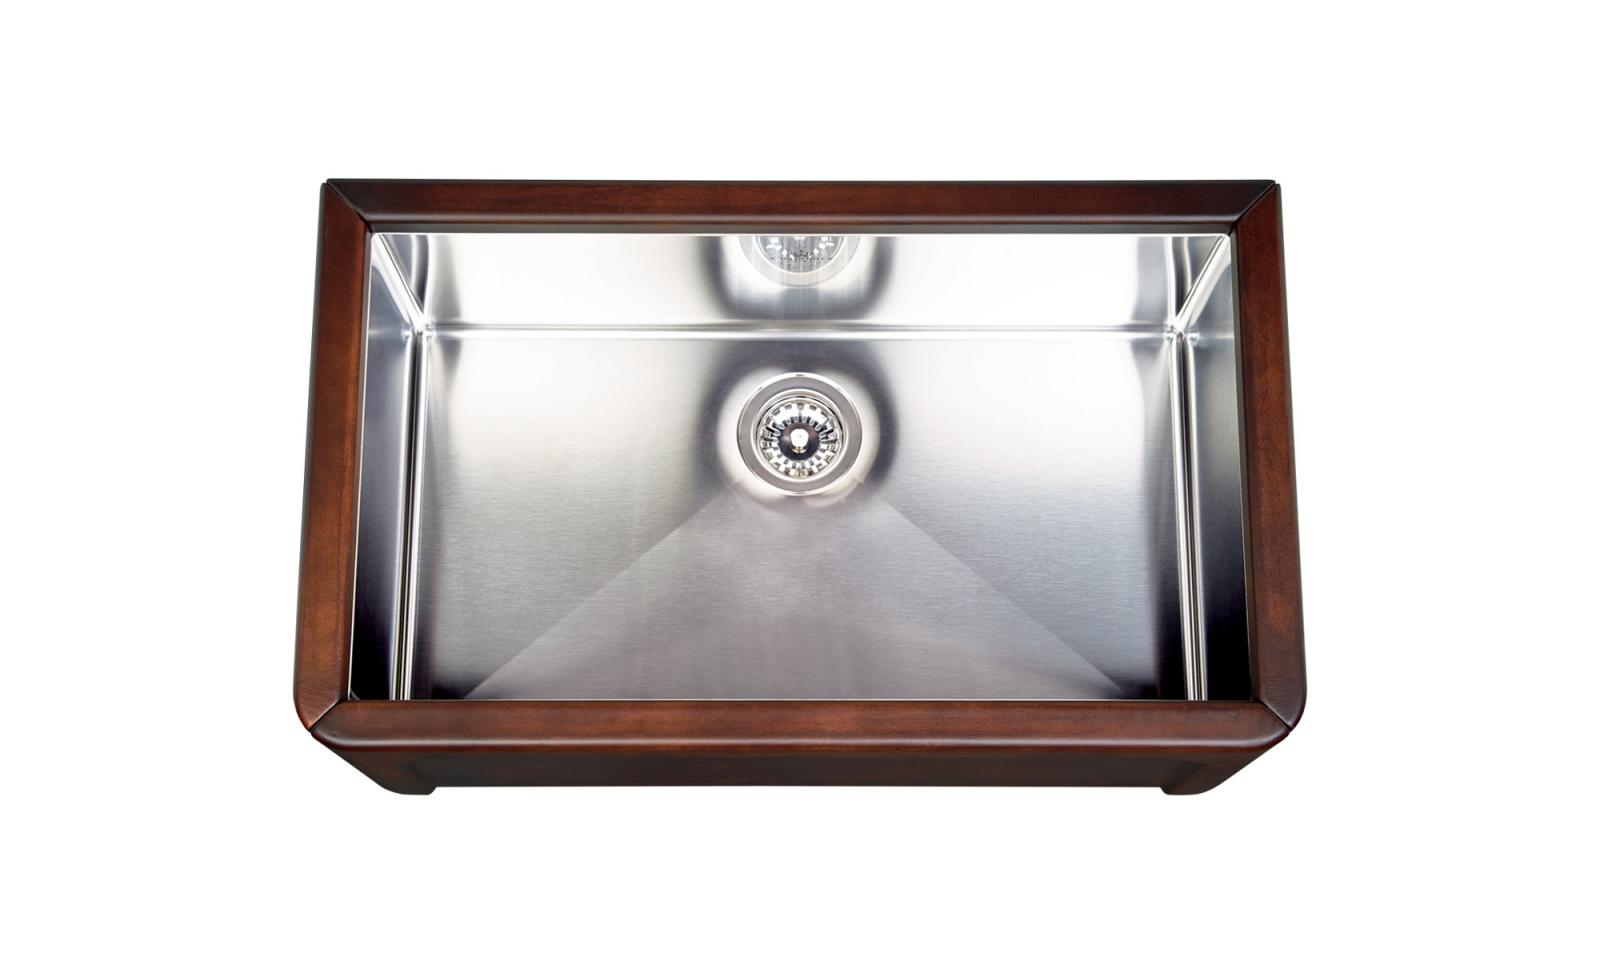 High-quality sink Dagobert brown - single bowl, leather - ambience 2